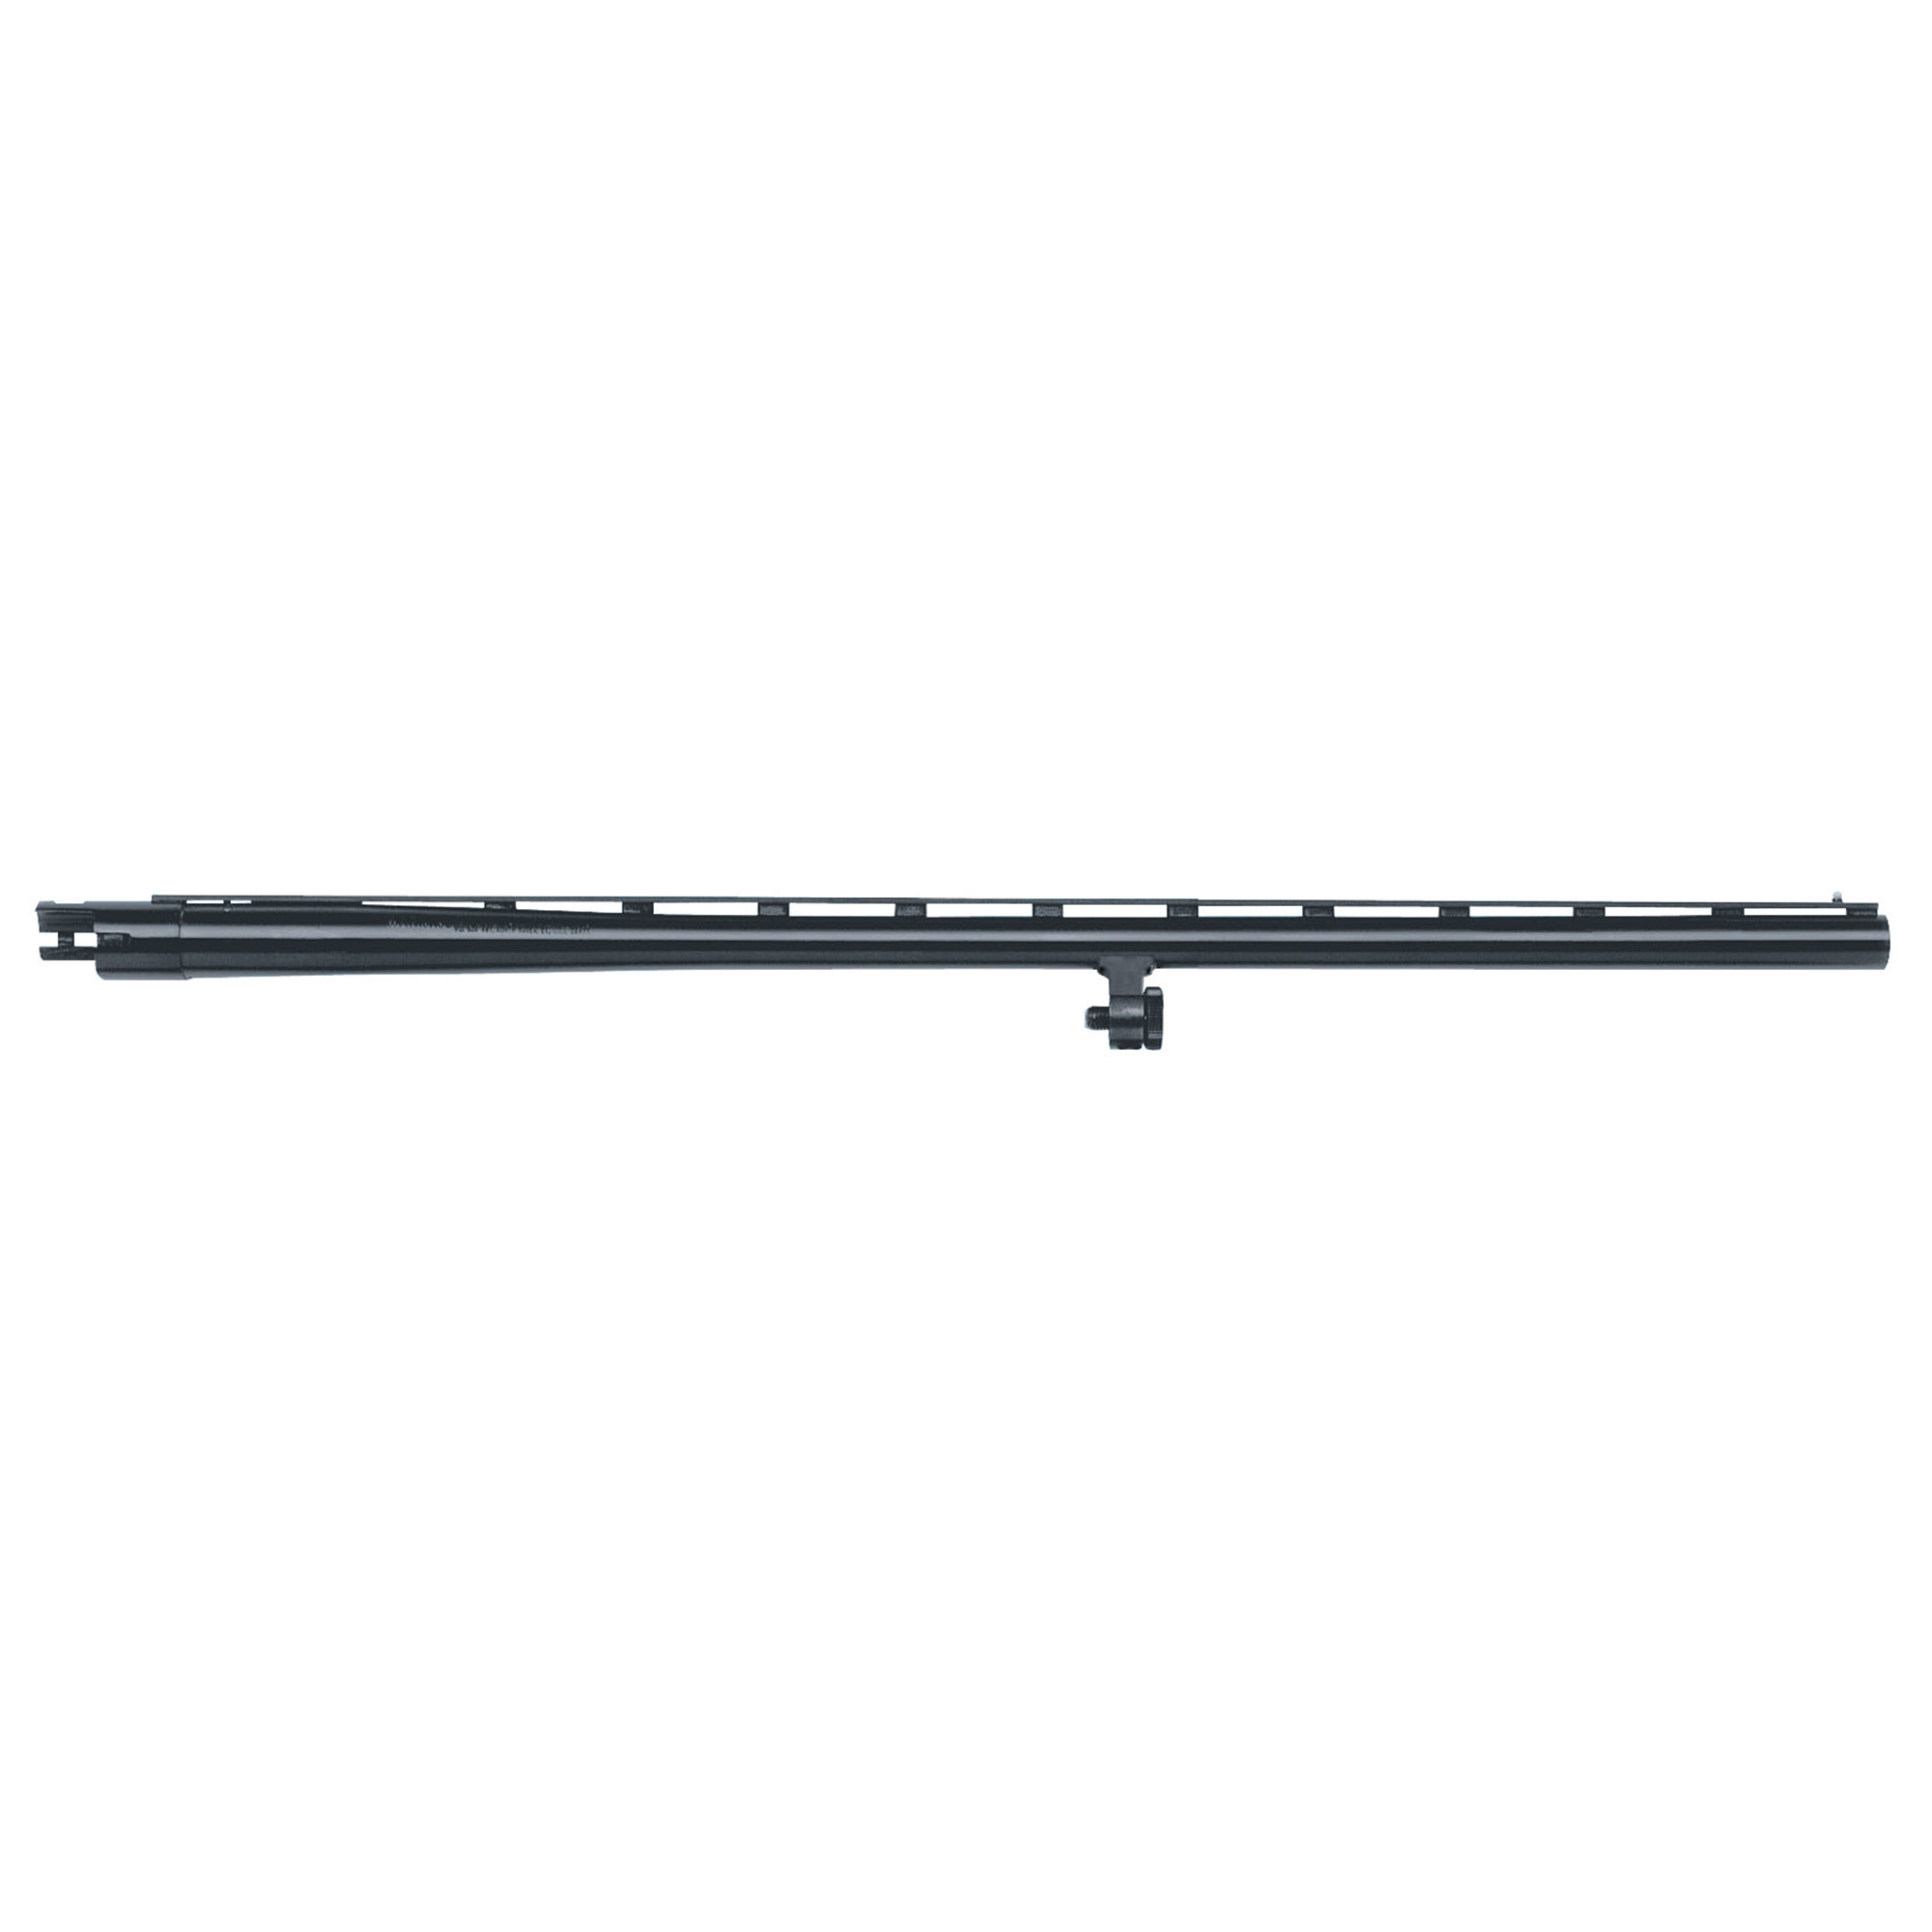 """26"""" All-Purpose barrel with vent rib"""" dual bead sights"""" smoothbore"""" and blued finish. Includes Accu-Choke set (Improved Cylinder"""" Modified"""" Full) and choke tube wrench."""